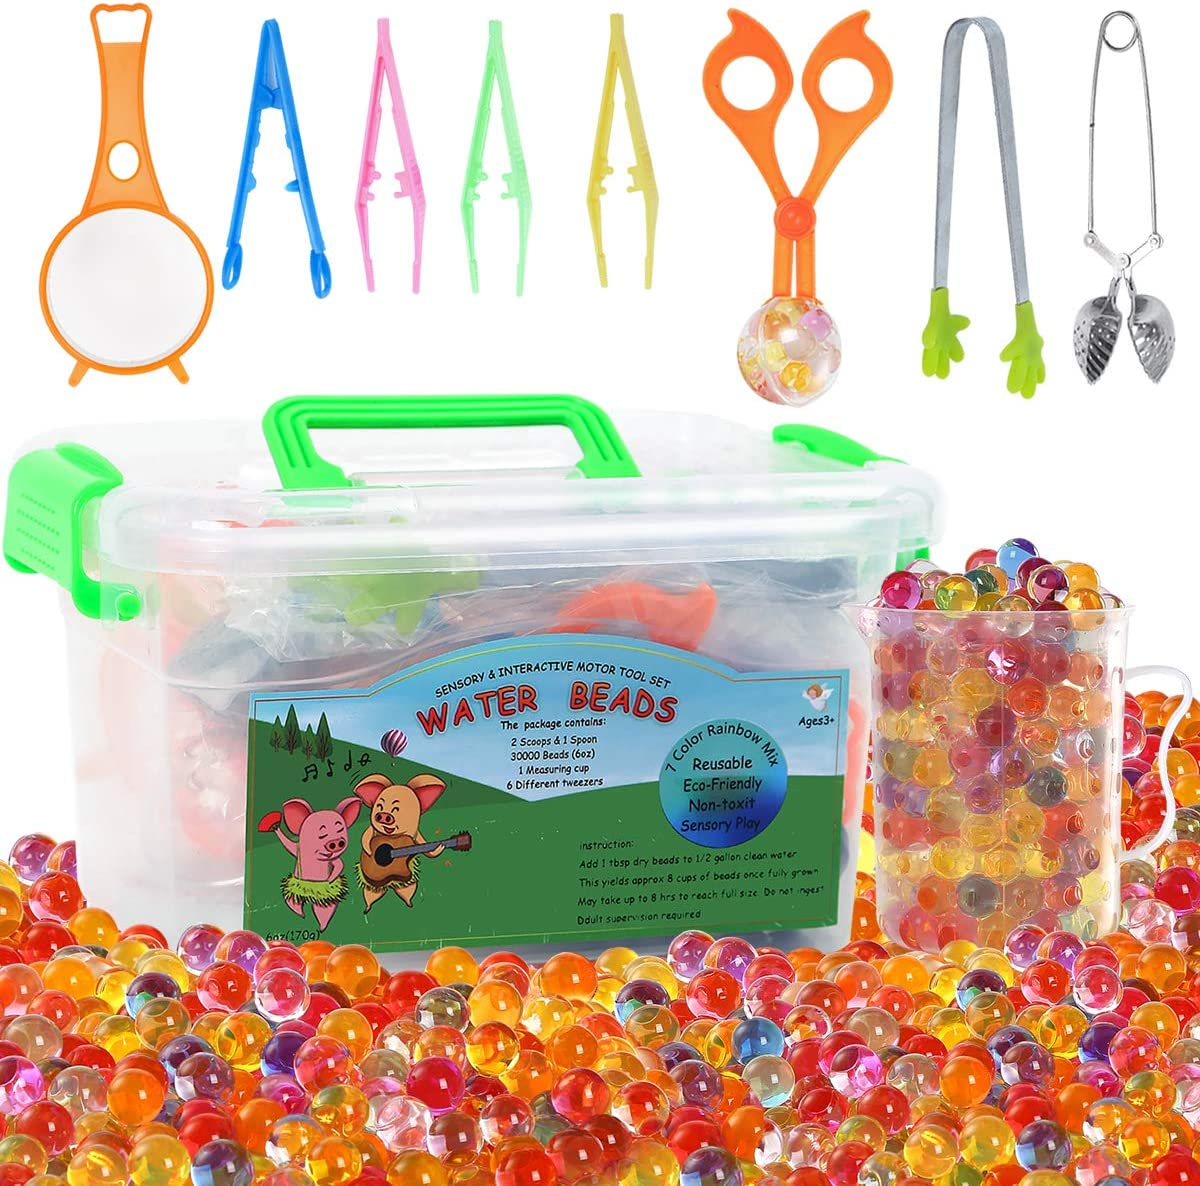 MAGICLUB Water Beads with Fine Motor Skills Toy Set Non-Toxic Water Sensory Toy for Kids-30,000 Beads Sensory Bin Kit with 1 Scoop 1 Spoon and 6 Tweezers Jelly Beads for Early Skill Development